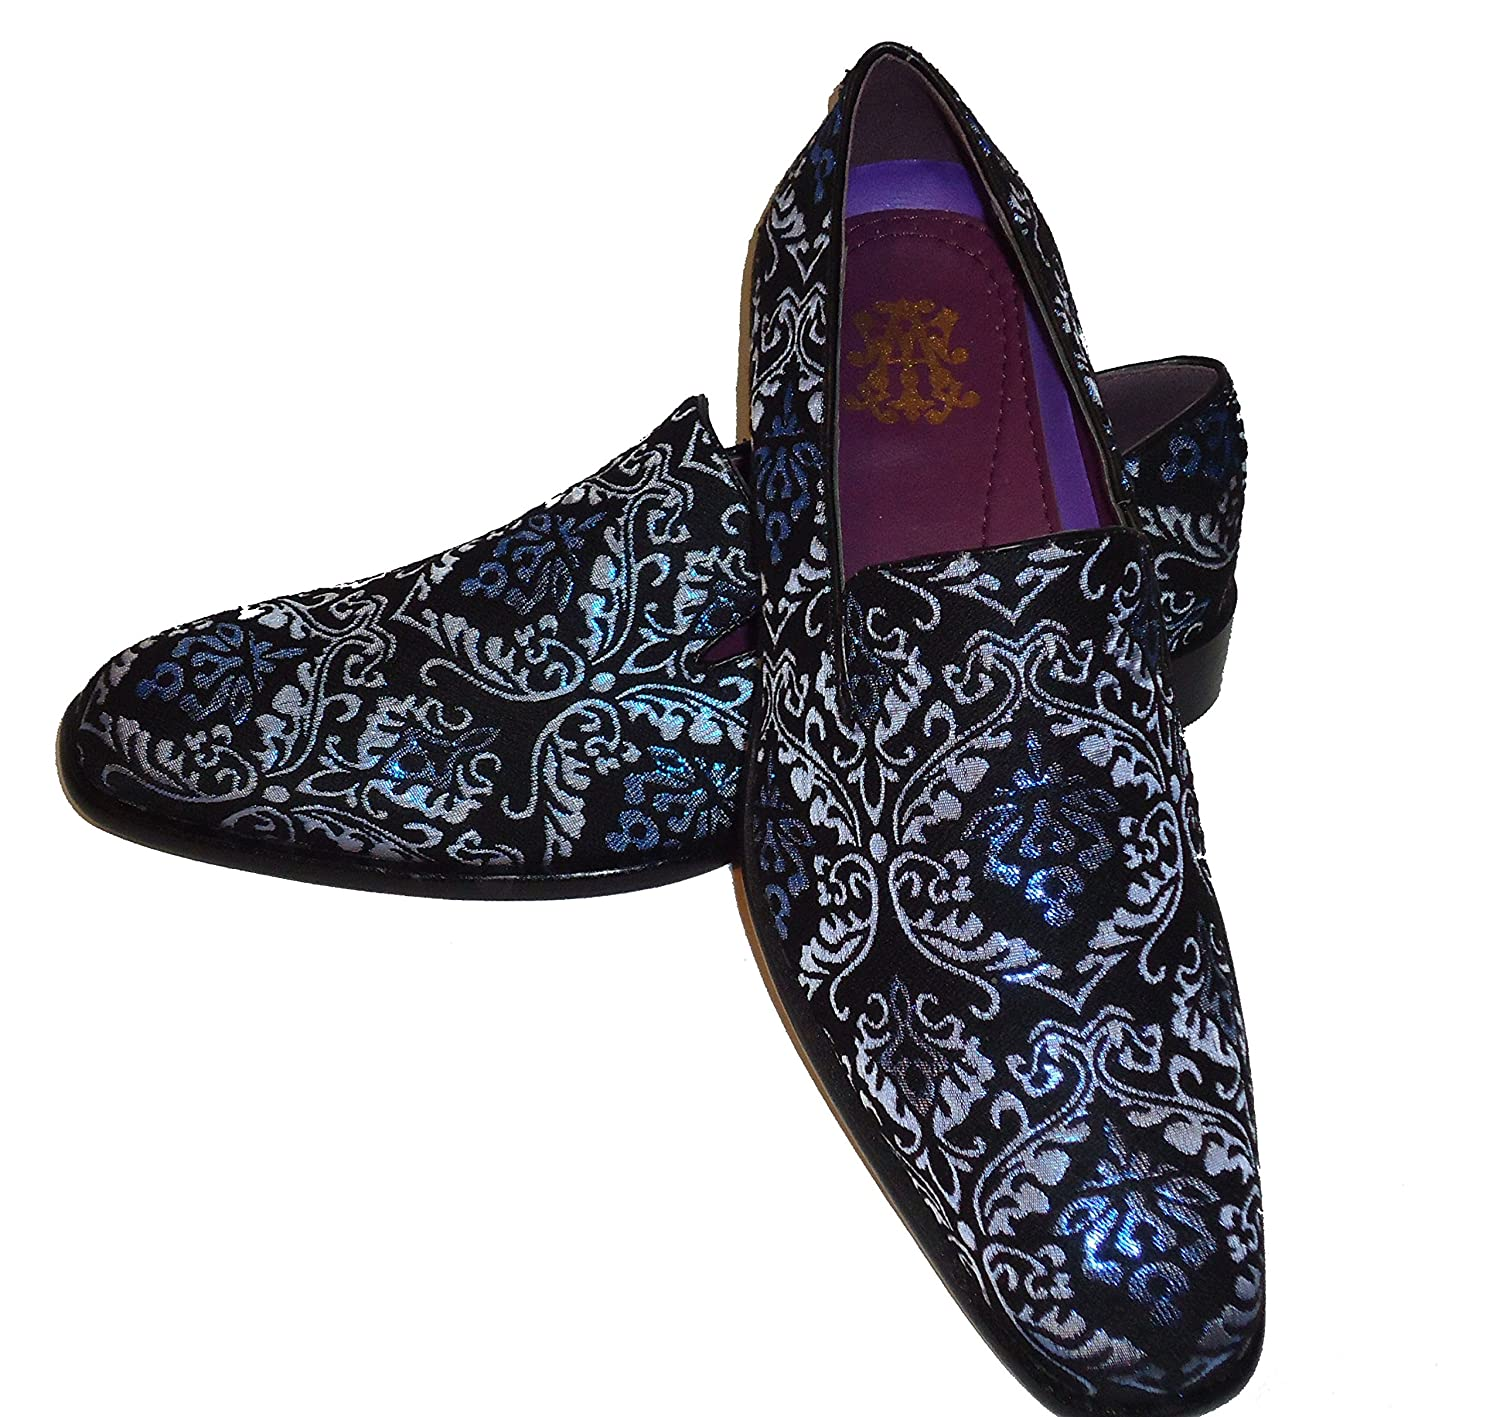 AM 6662 Mens Black w/ Blue Metallic Paisley Fabric Slippers Dress Shoes (10.5)